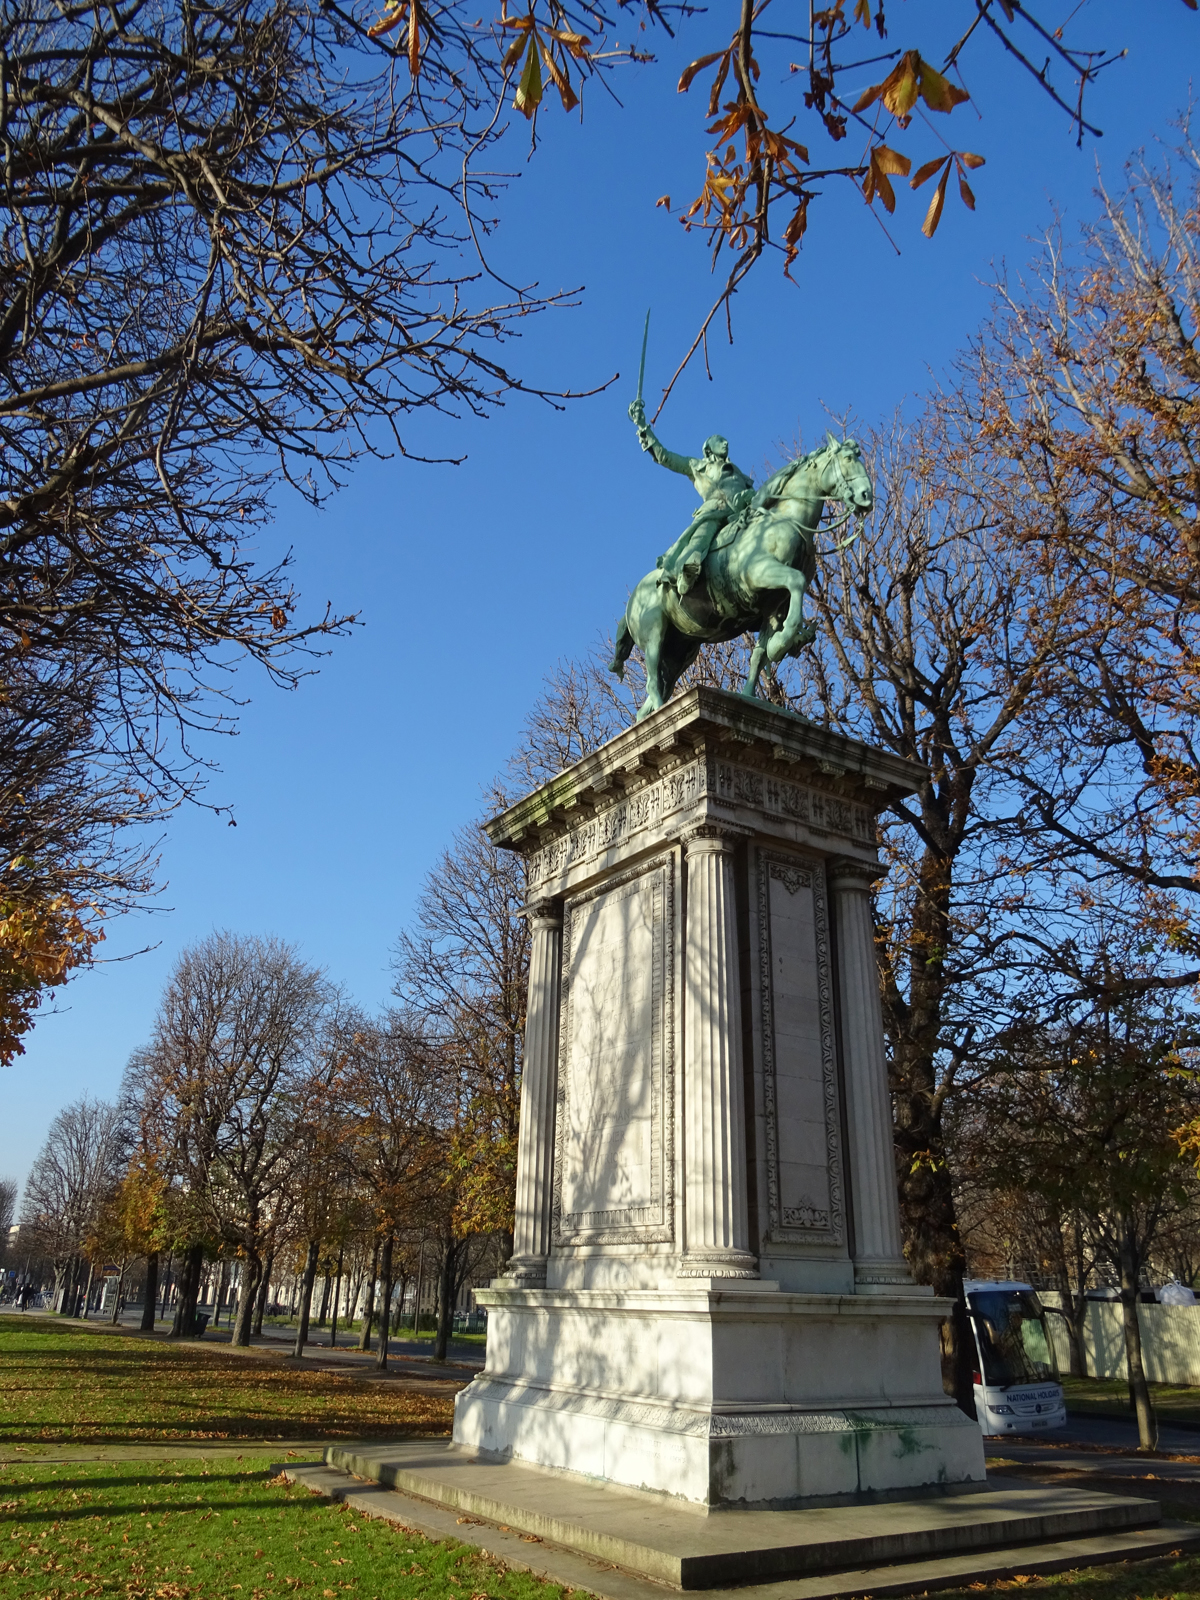 The Childrens Statue of Lafayette